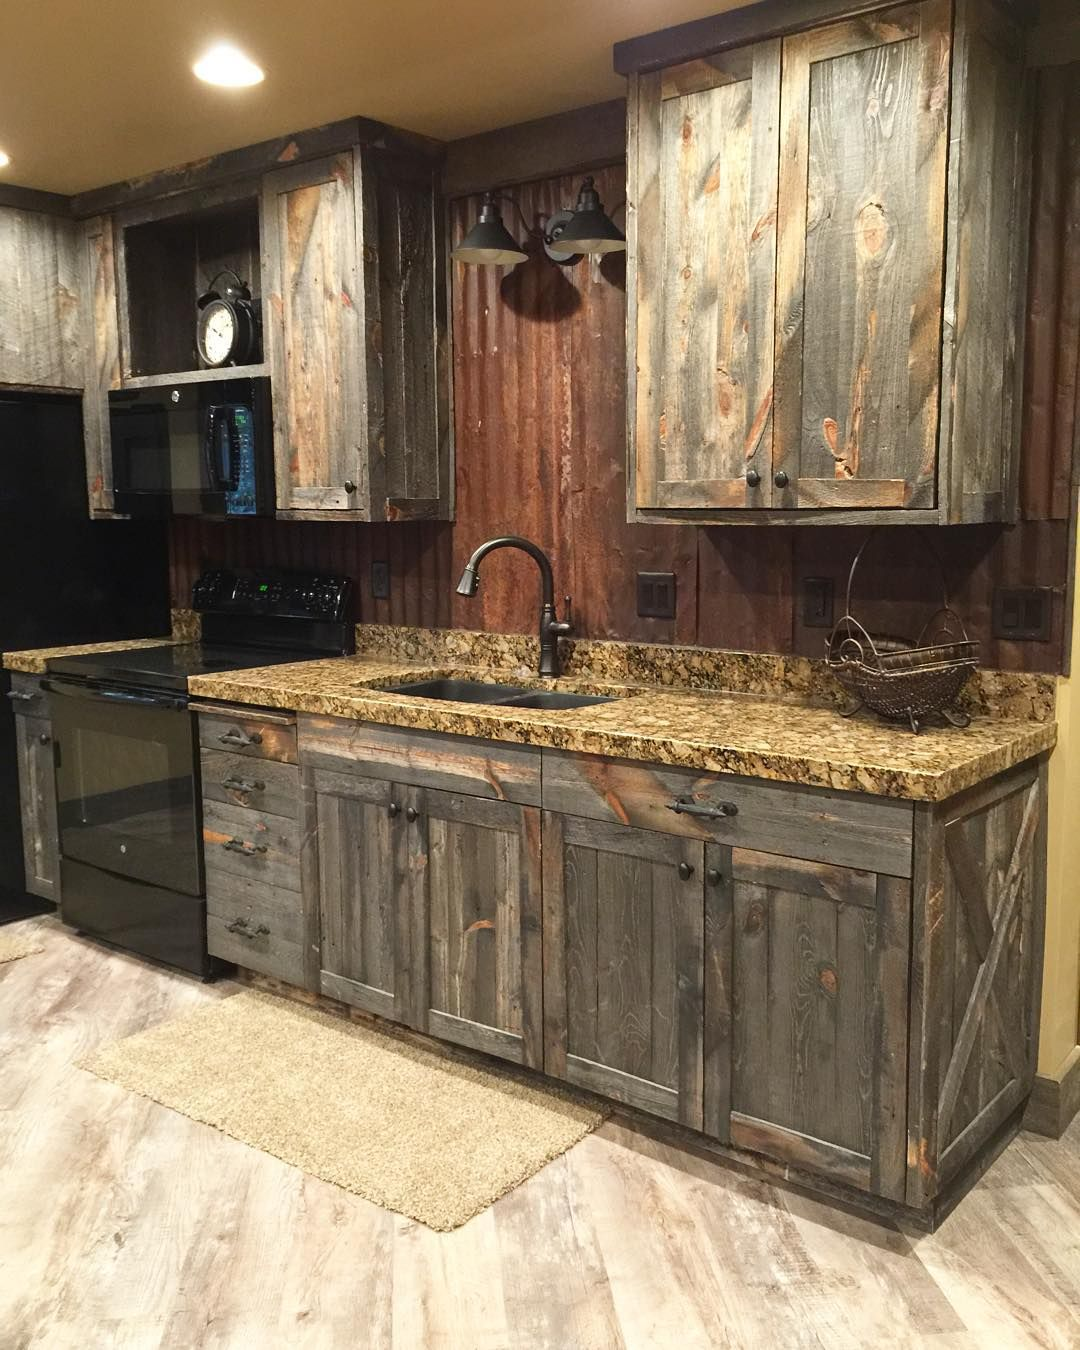 Merveilleux 15 Rustic Kitchen Cabinets Designs Ideas With Photo Gallery